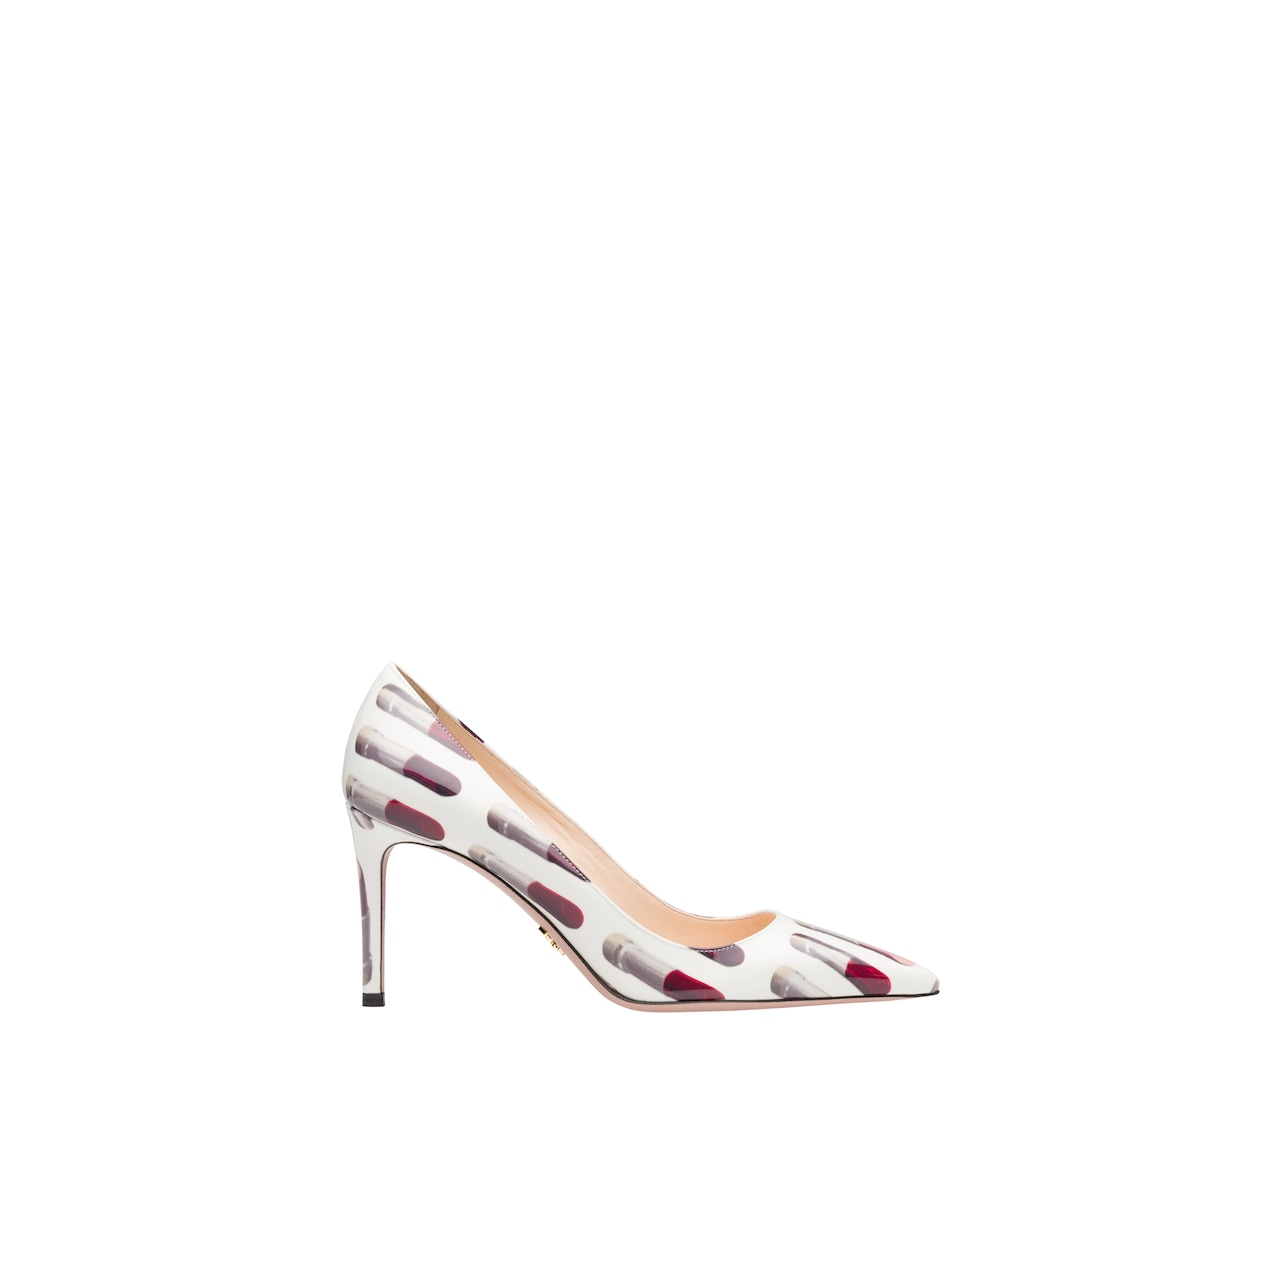 Patent leather pumps with lipstick print